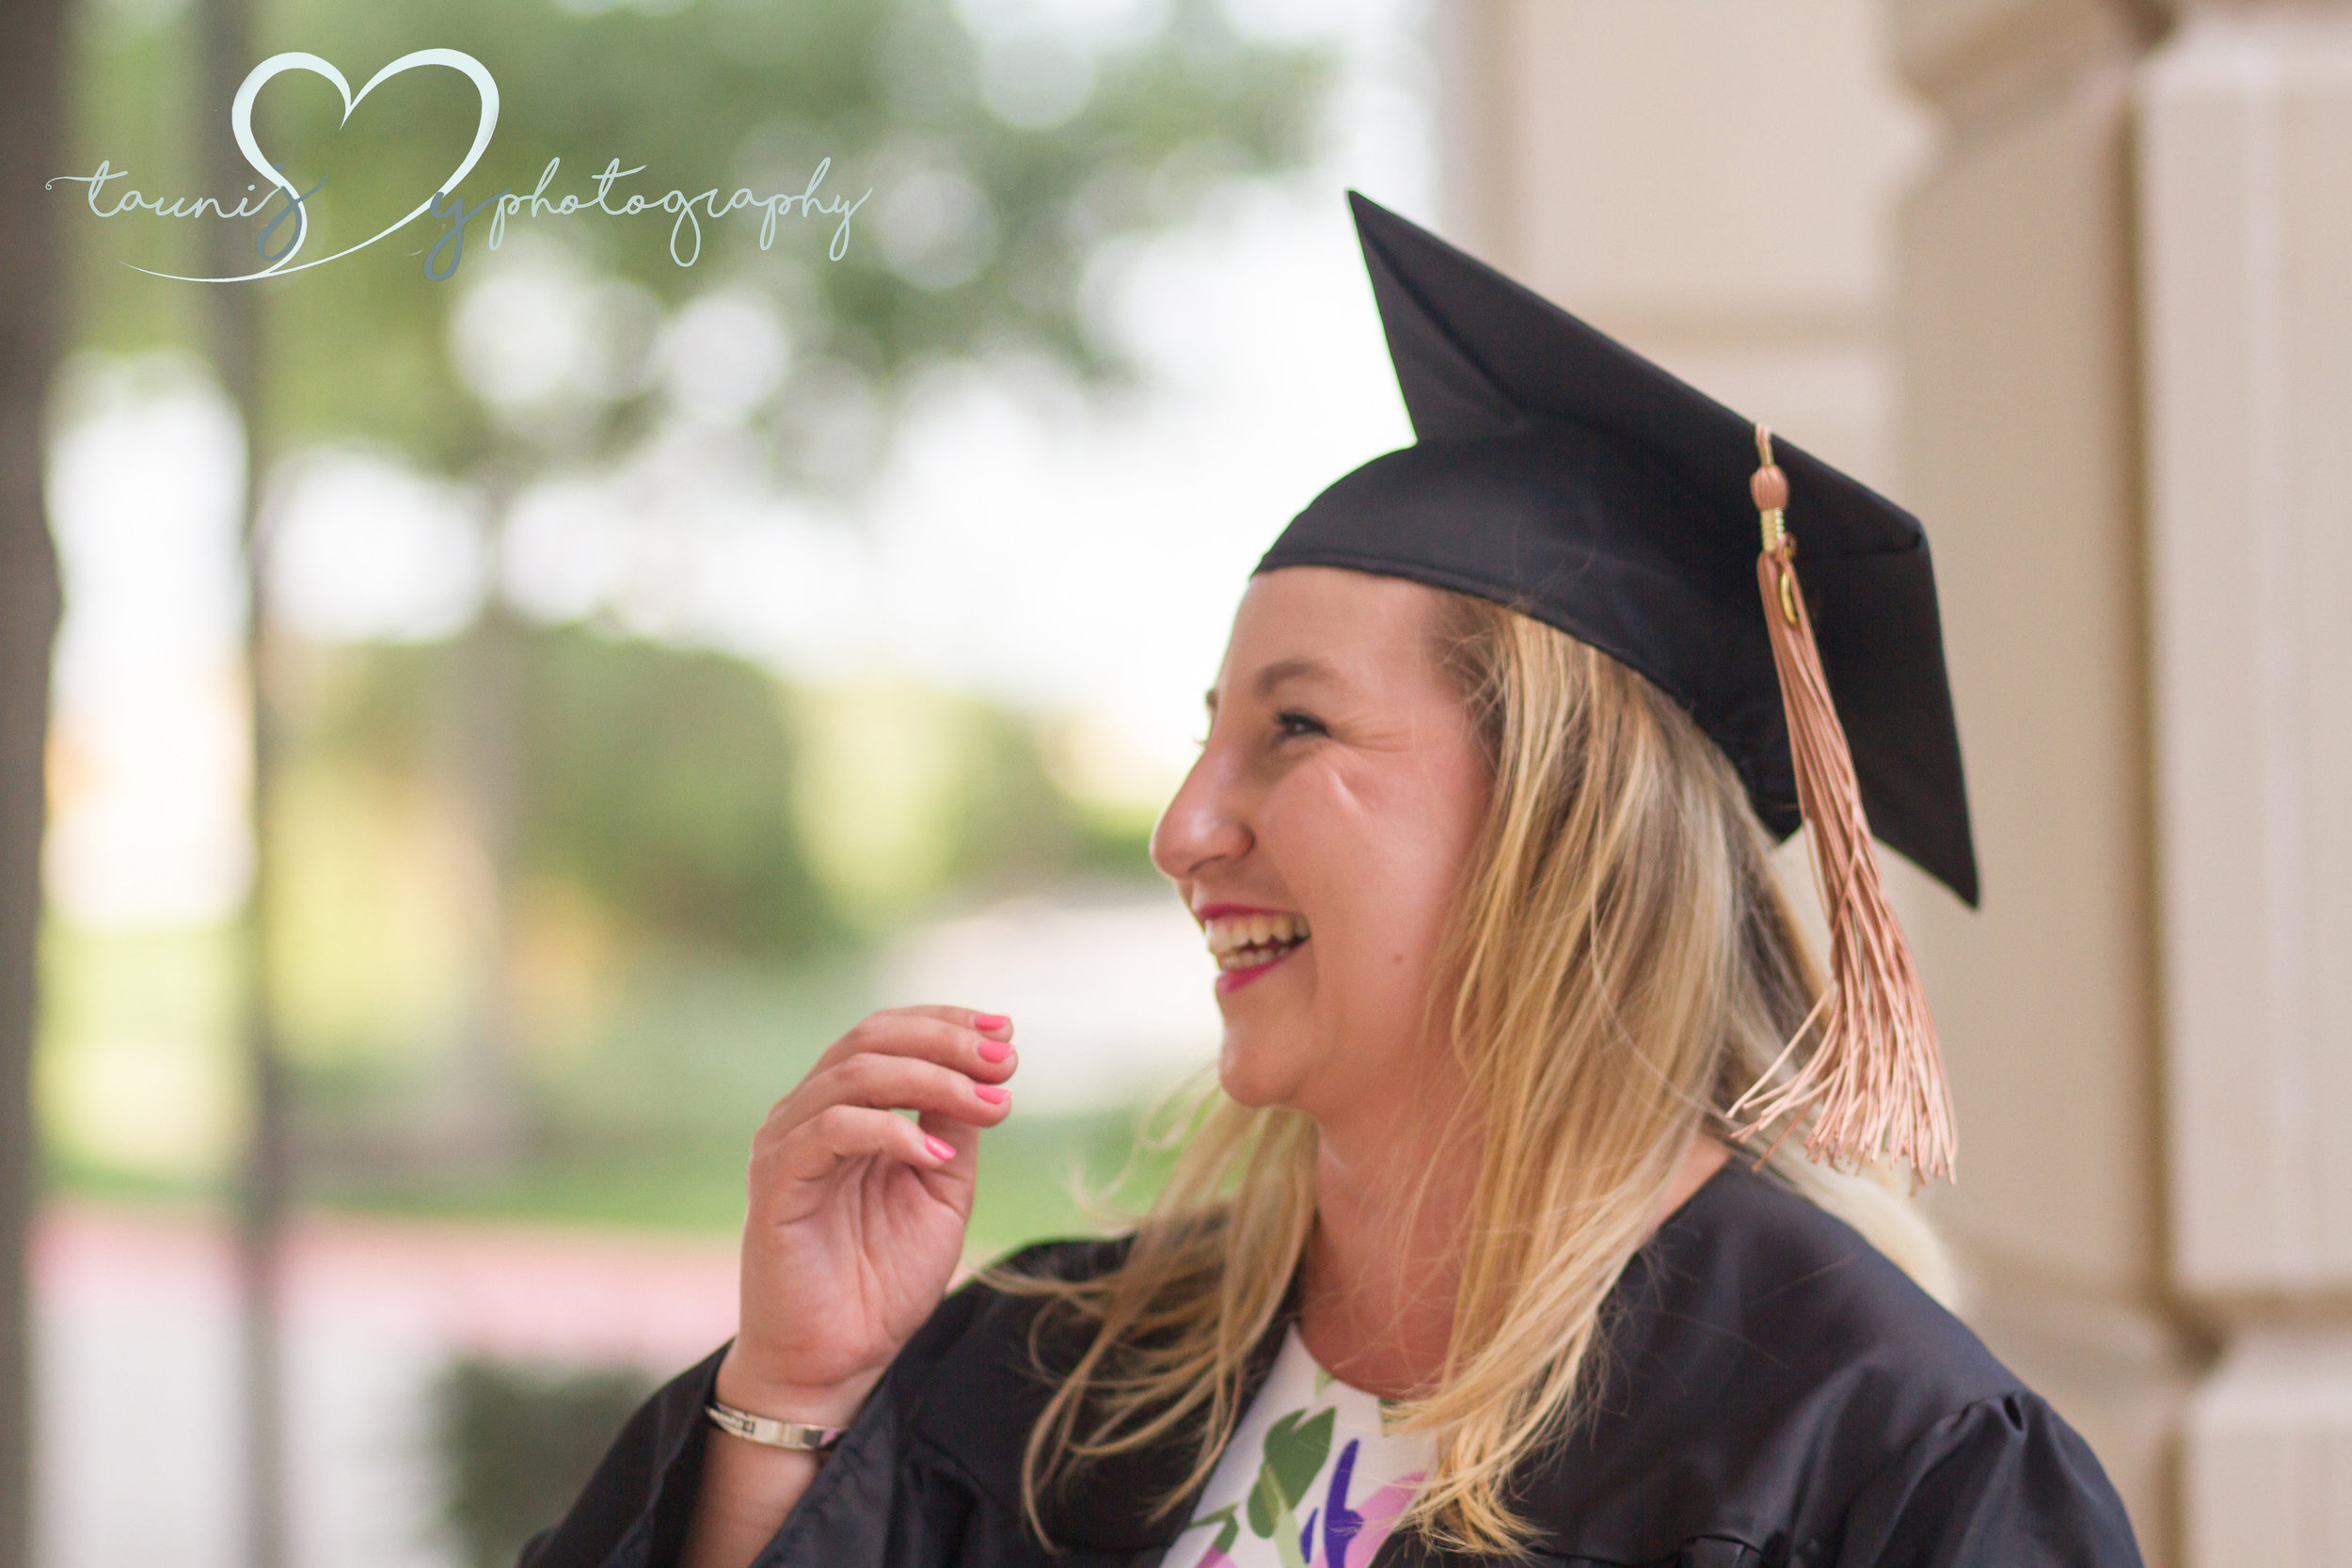 Austin Texas graduation photography Tauni Joy Photography